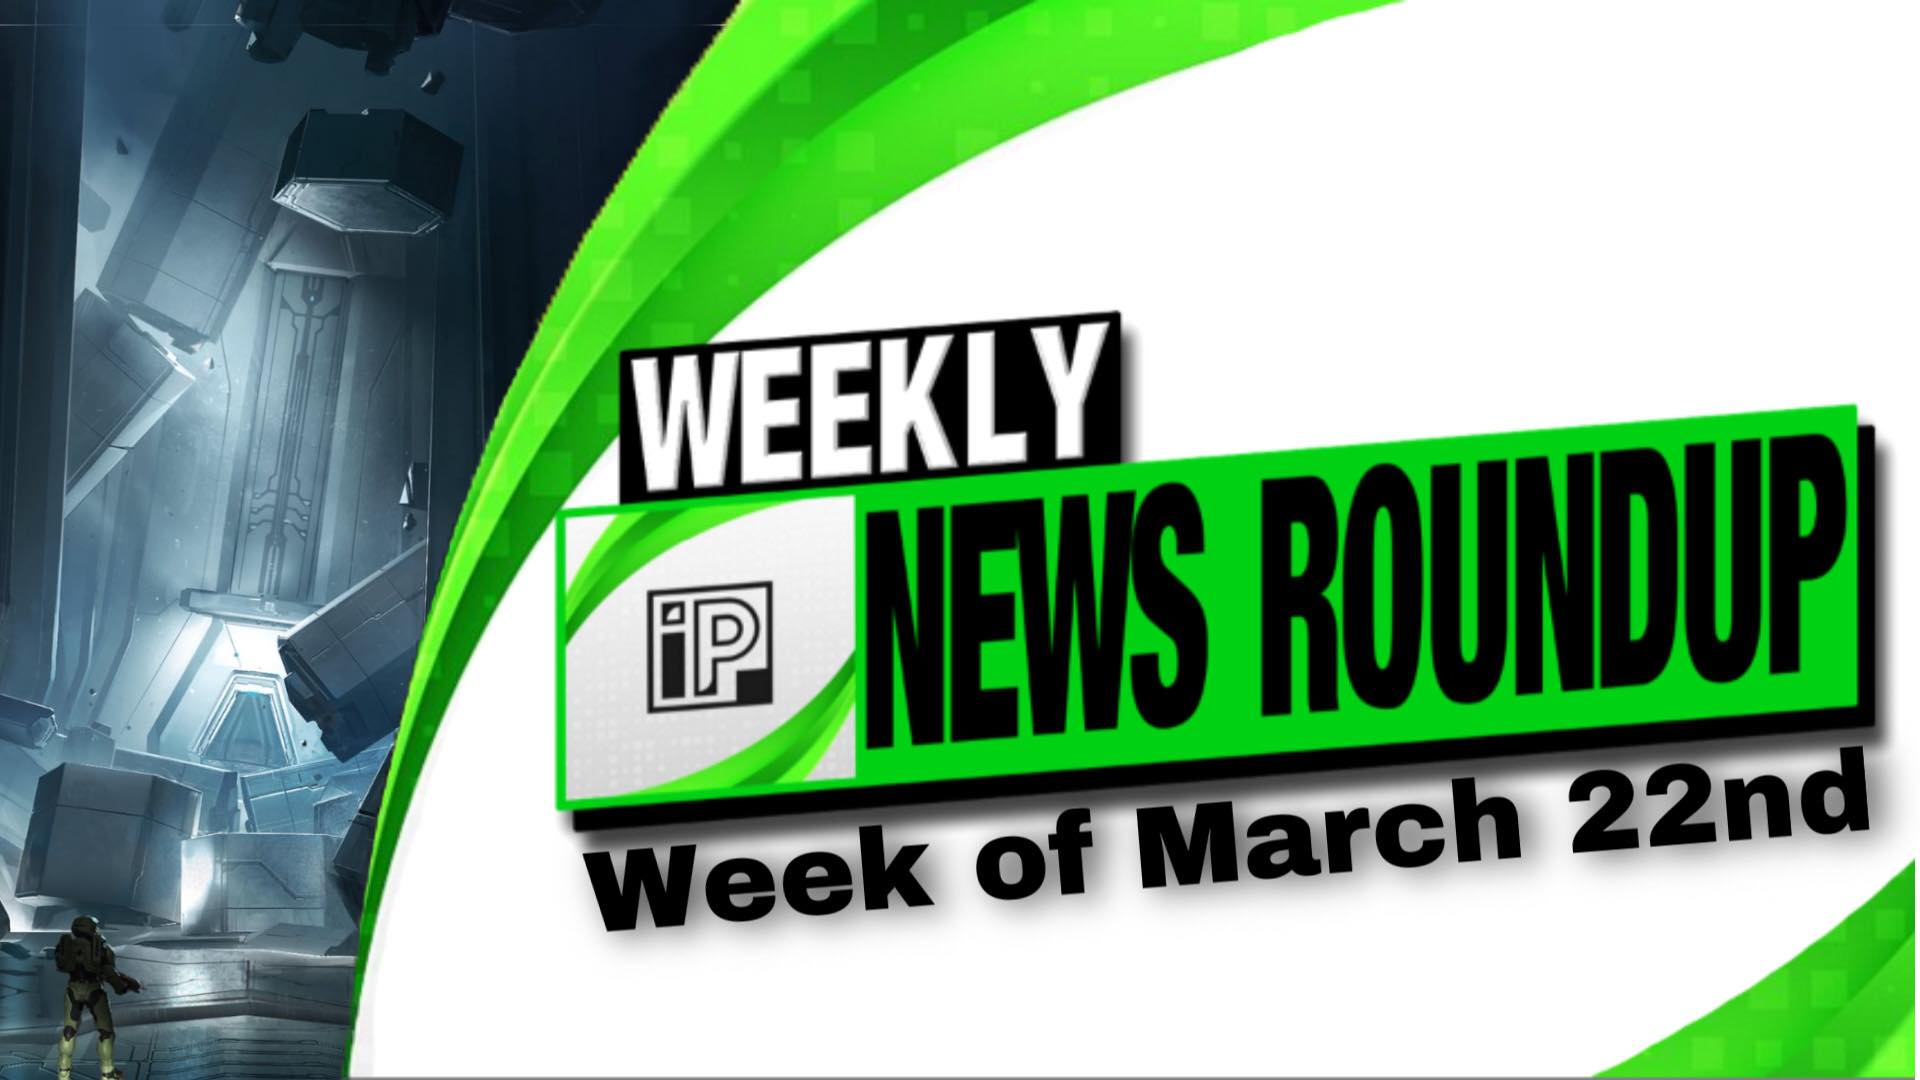 Weekly News Roundup – Week of March 22nd